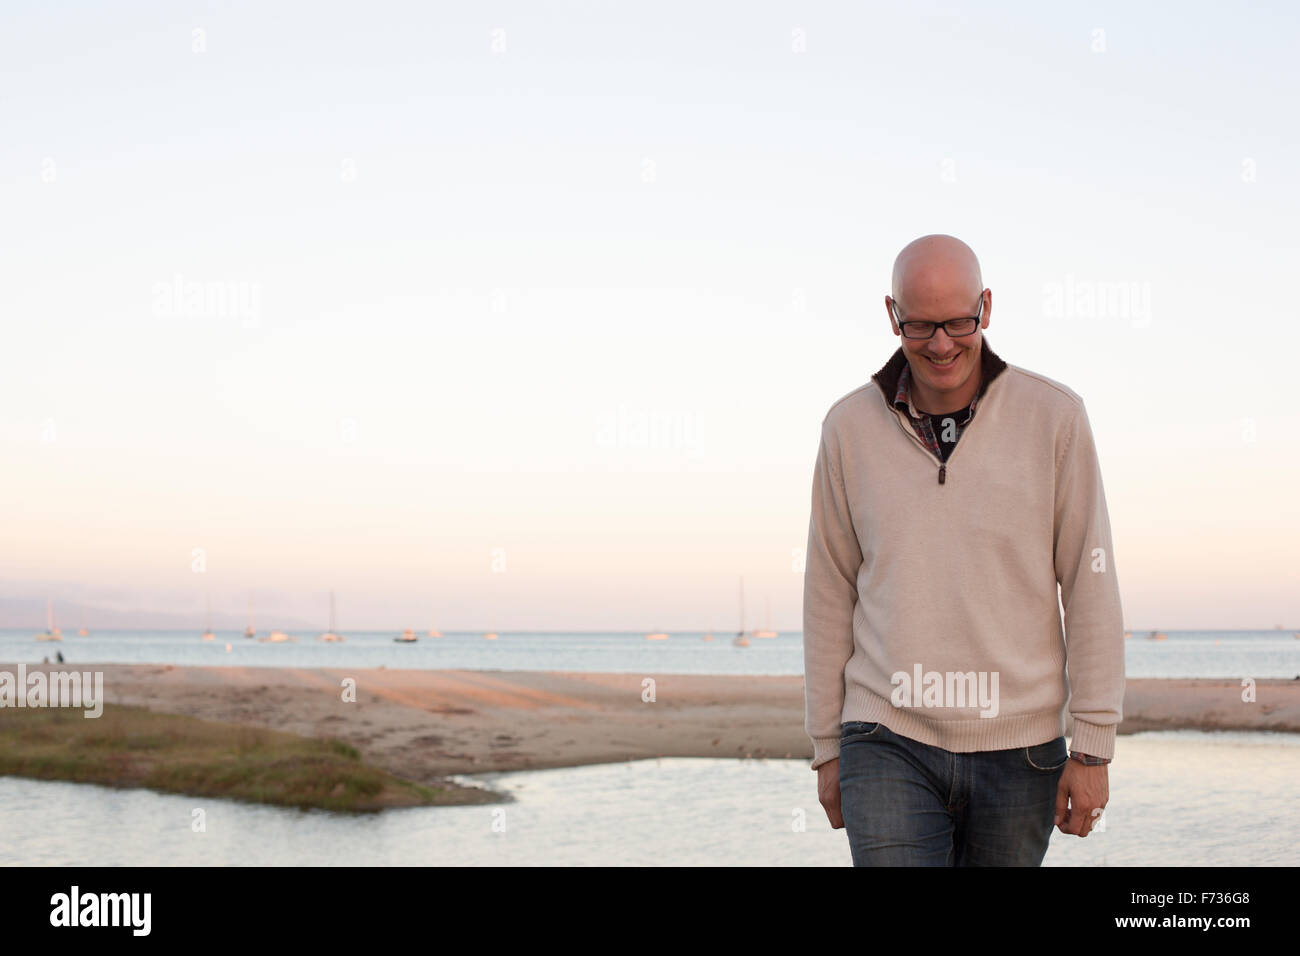 Bald man walking on a sandy beach by the ocean. - Stock Image